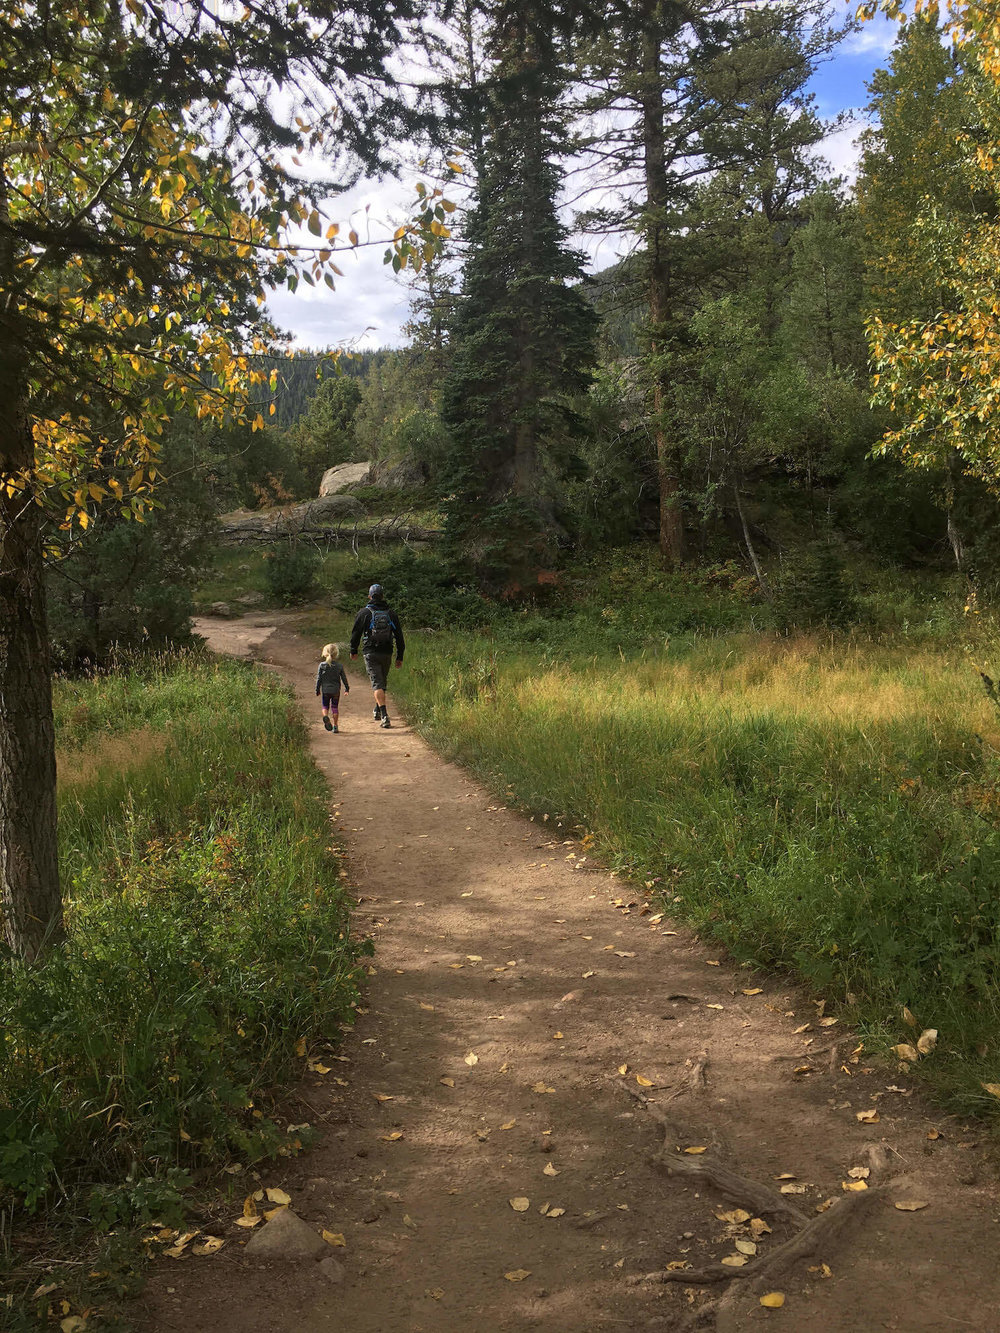 On the trail in Rocky Mountain National Park, photo by Courtney Johnson.